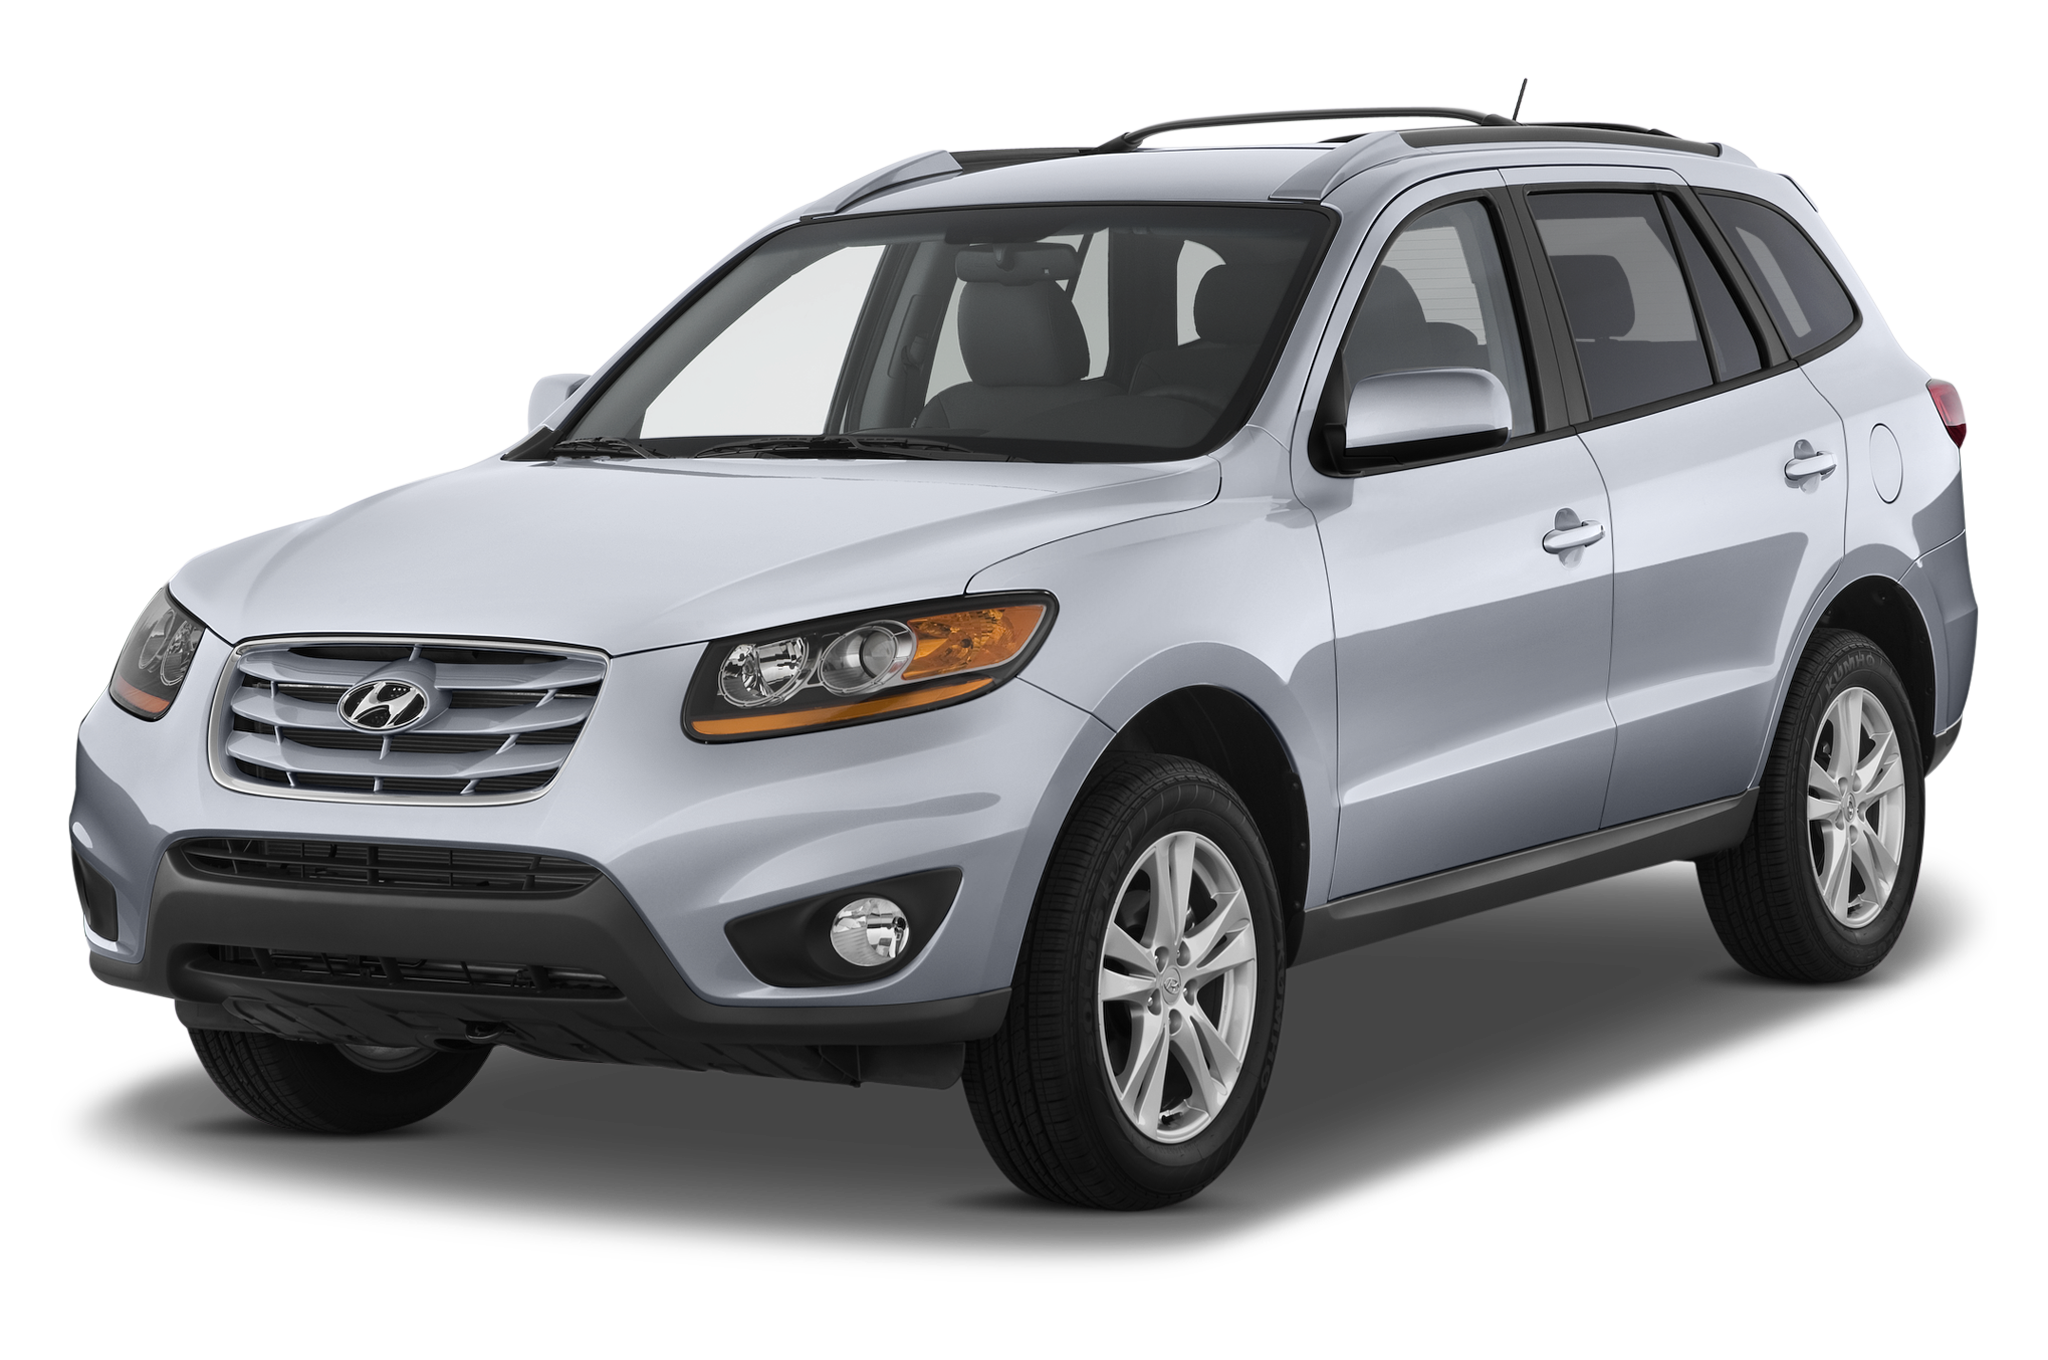 recall central 2011 hyundai santa fe recalled for brake. Black Bedroom Furniture Sets. Home Design Ideas